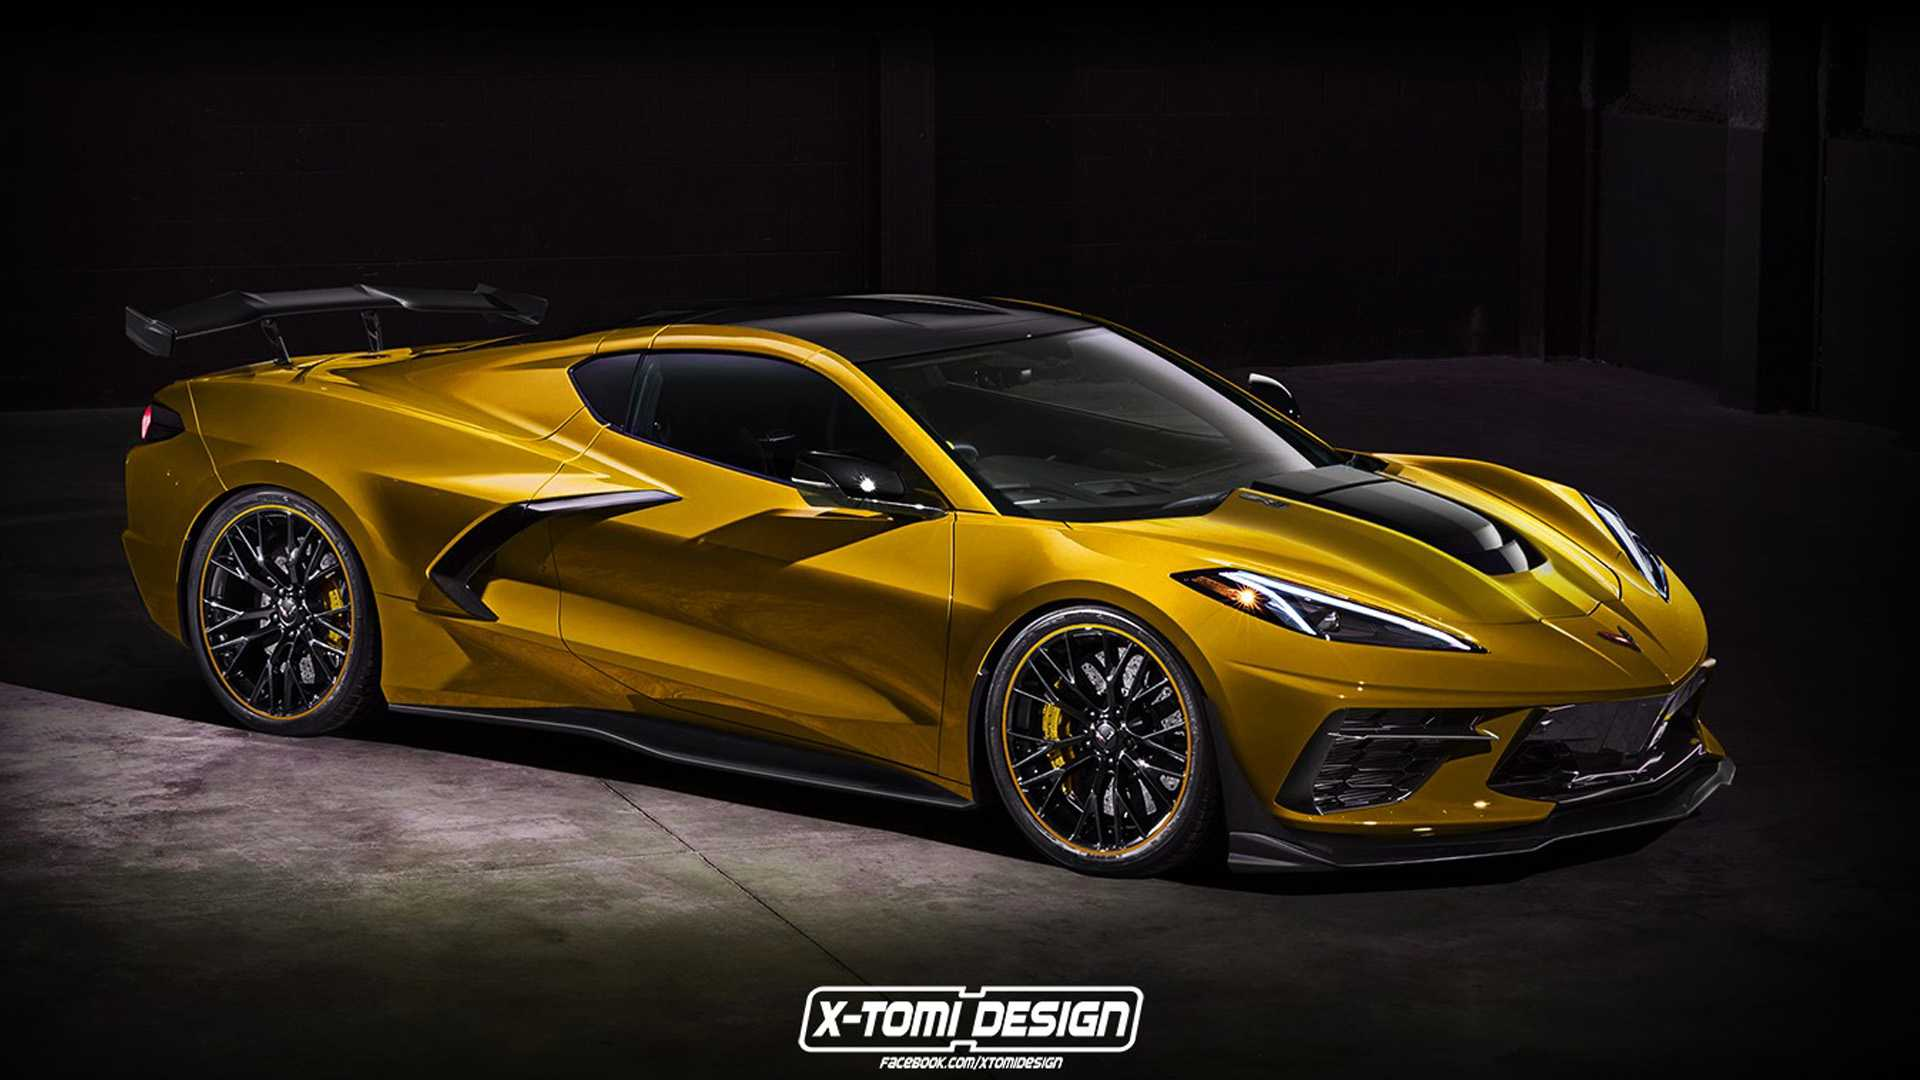 36 Great 2020 Chevrolet Corvette Zr1 Performance and New Engine for 2020 Chevrolet Corvette Zr1